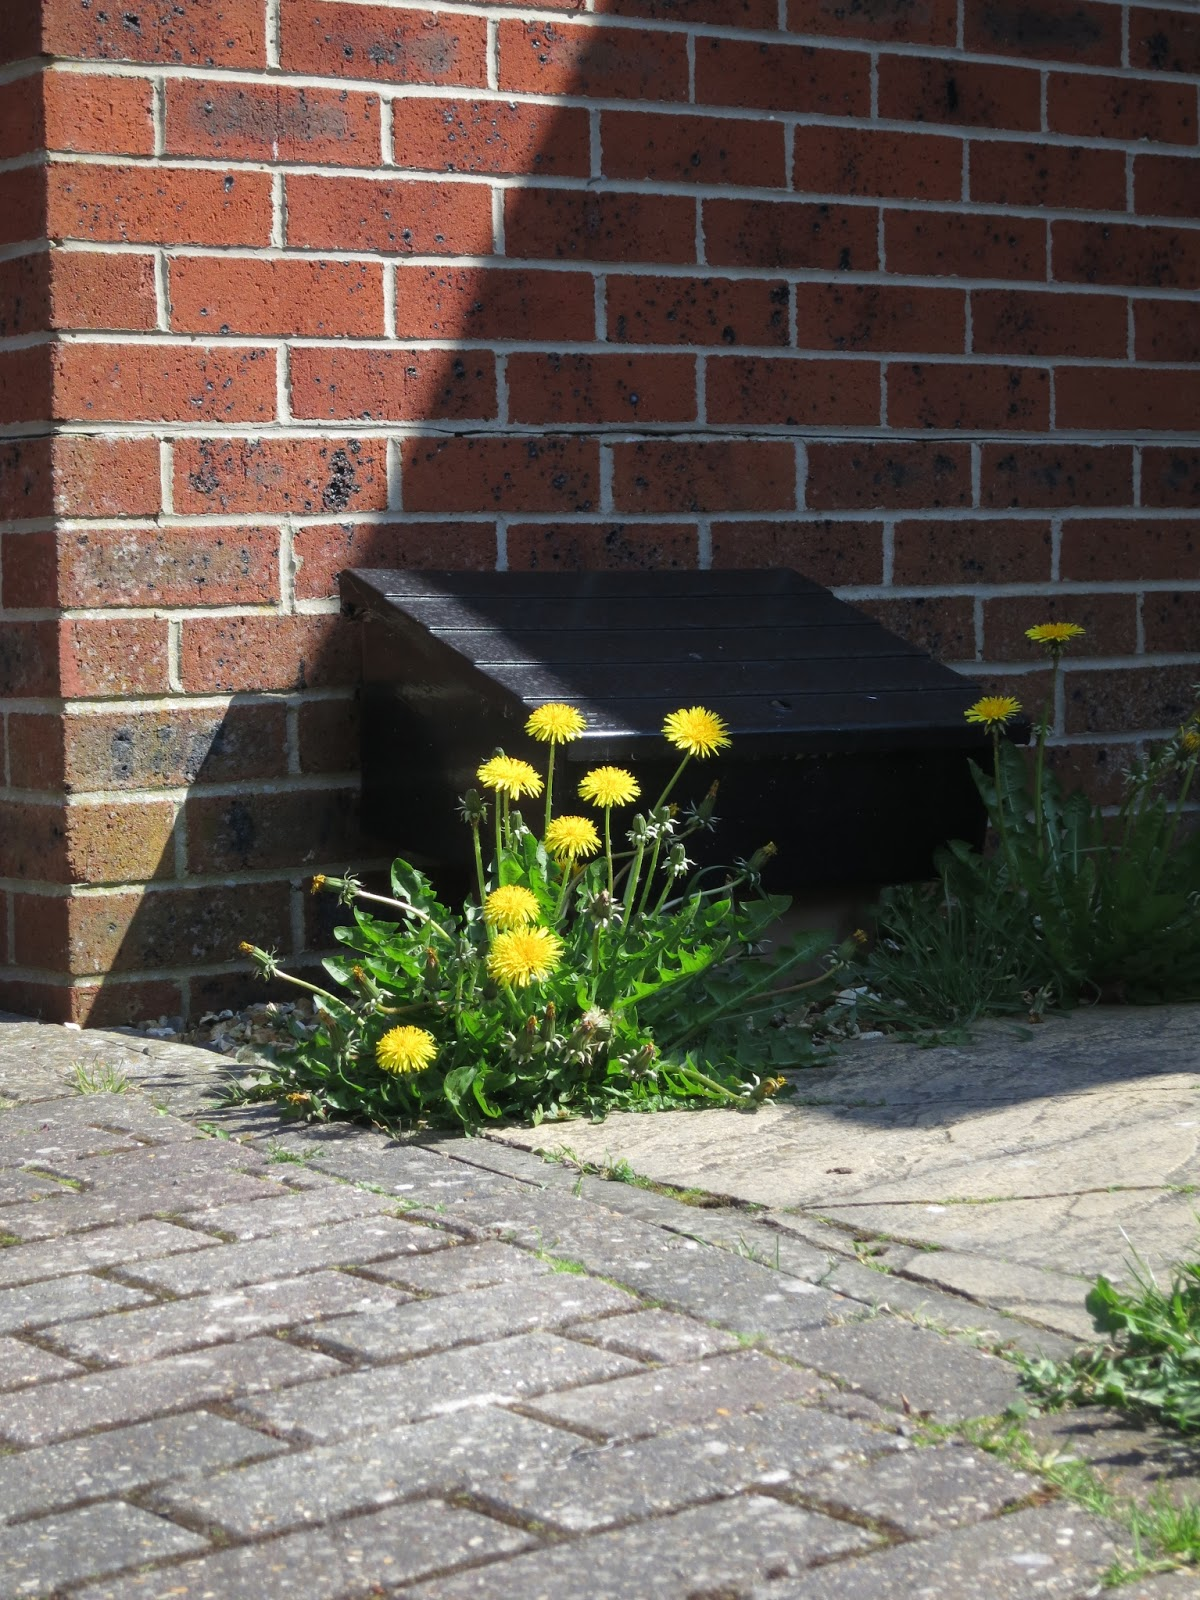 Clump of tall dandelions by gas meter box.